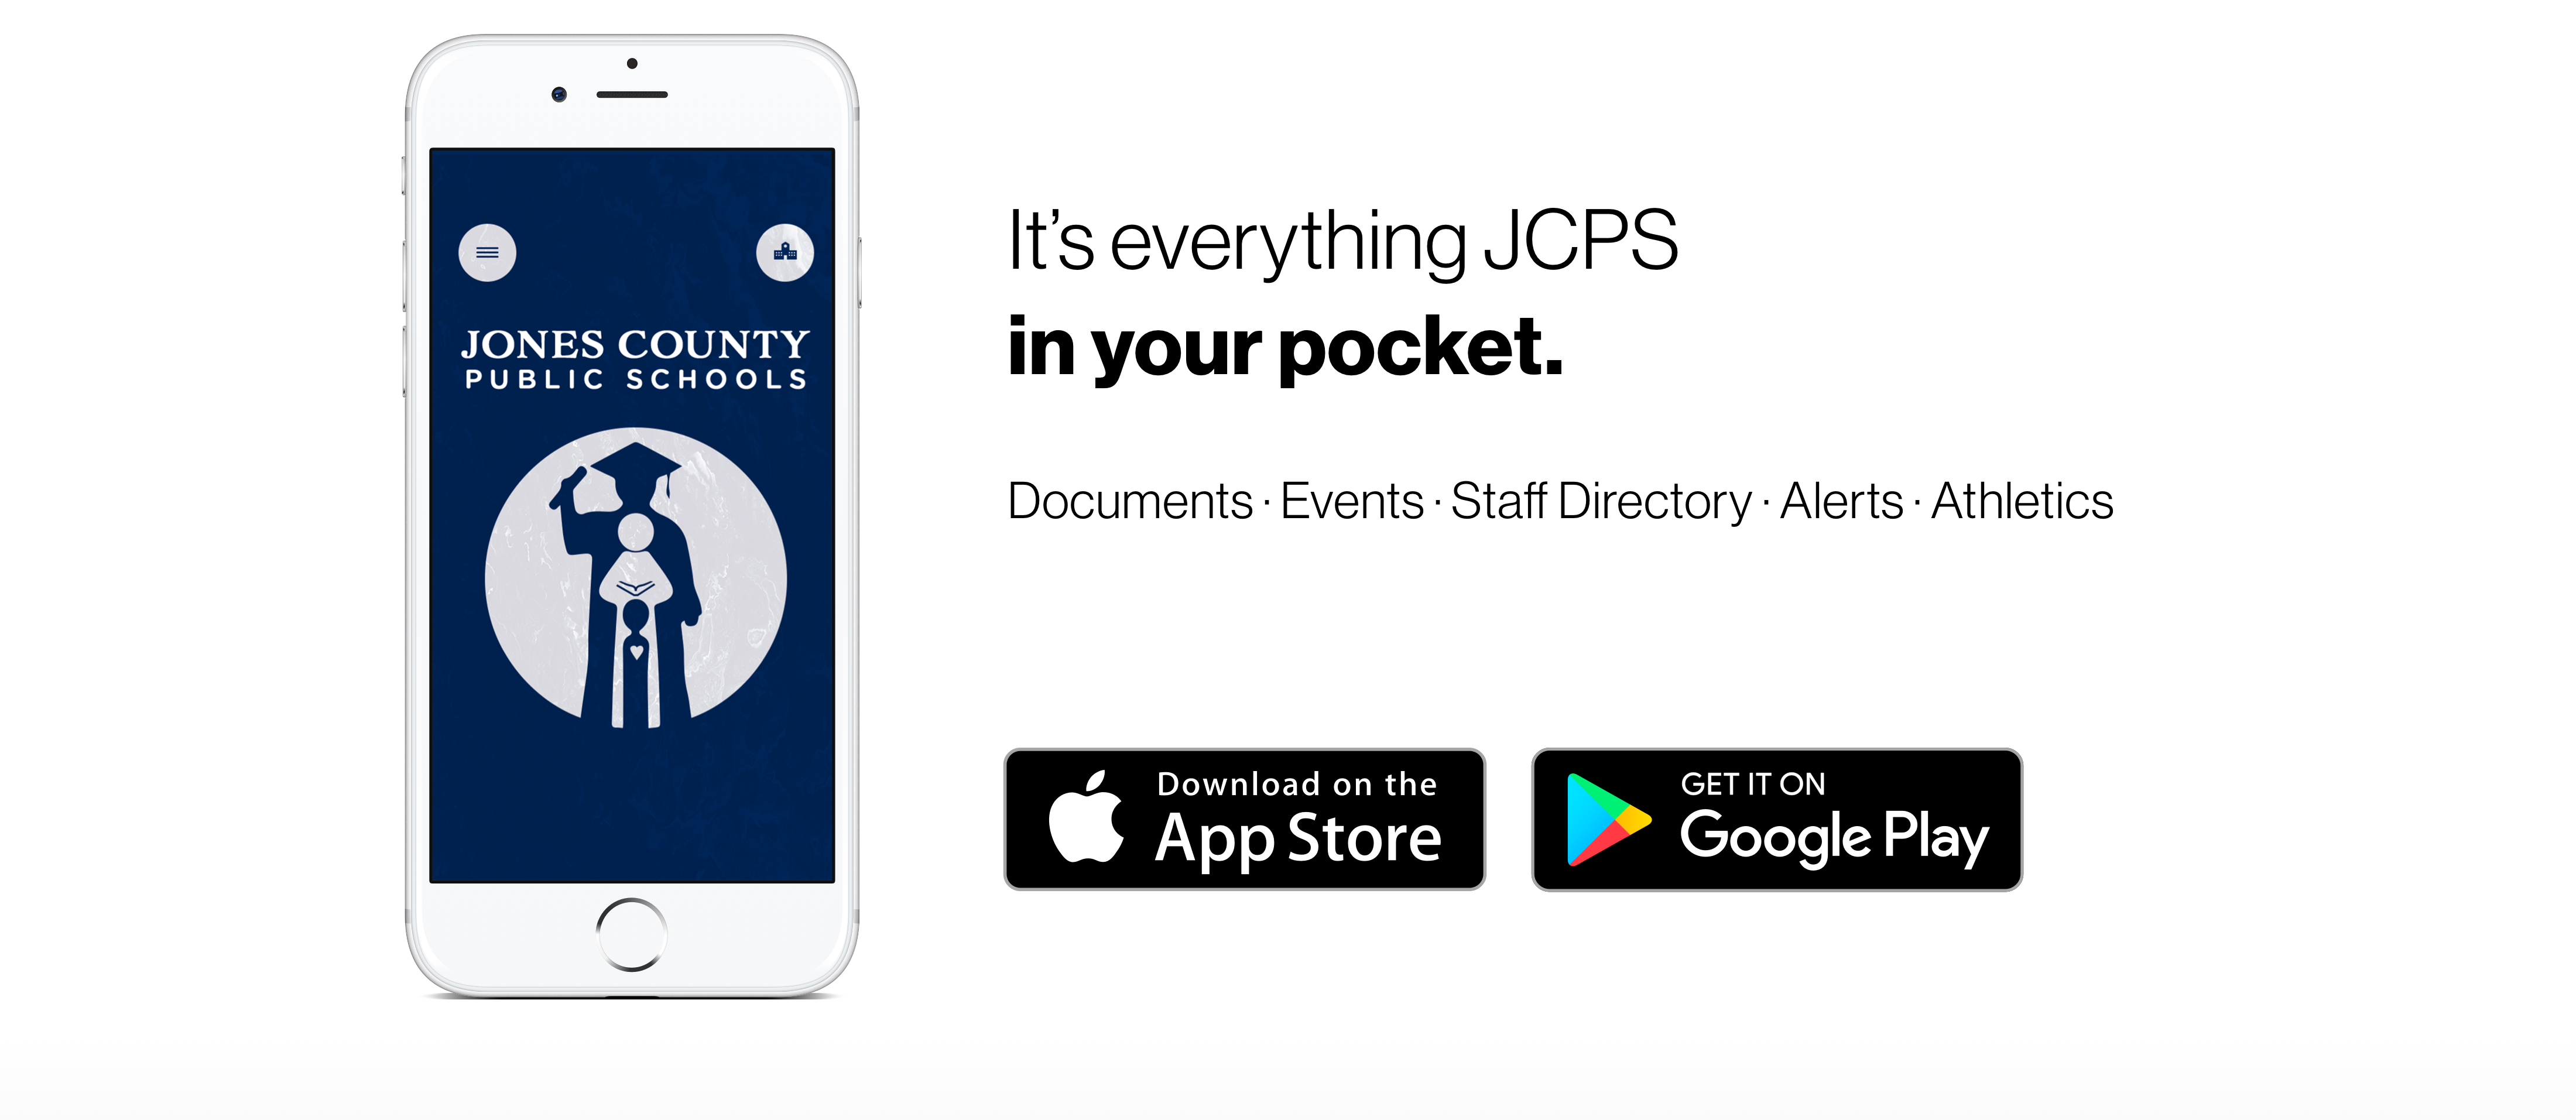 Download the JCPS App